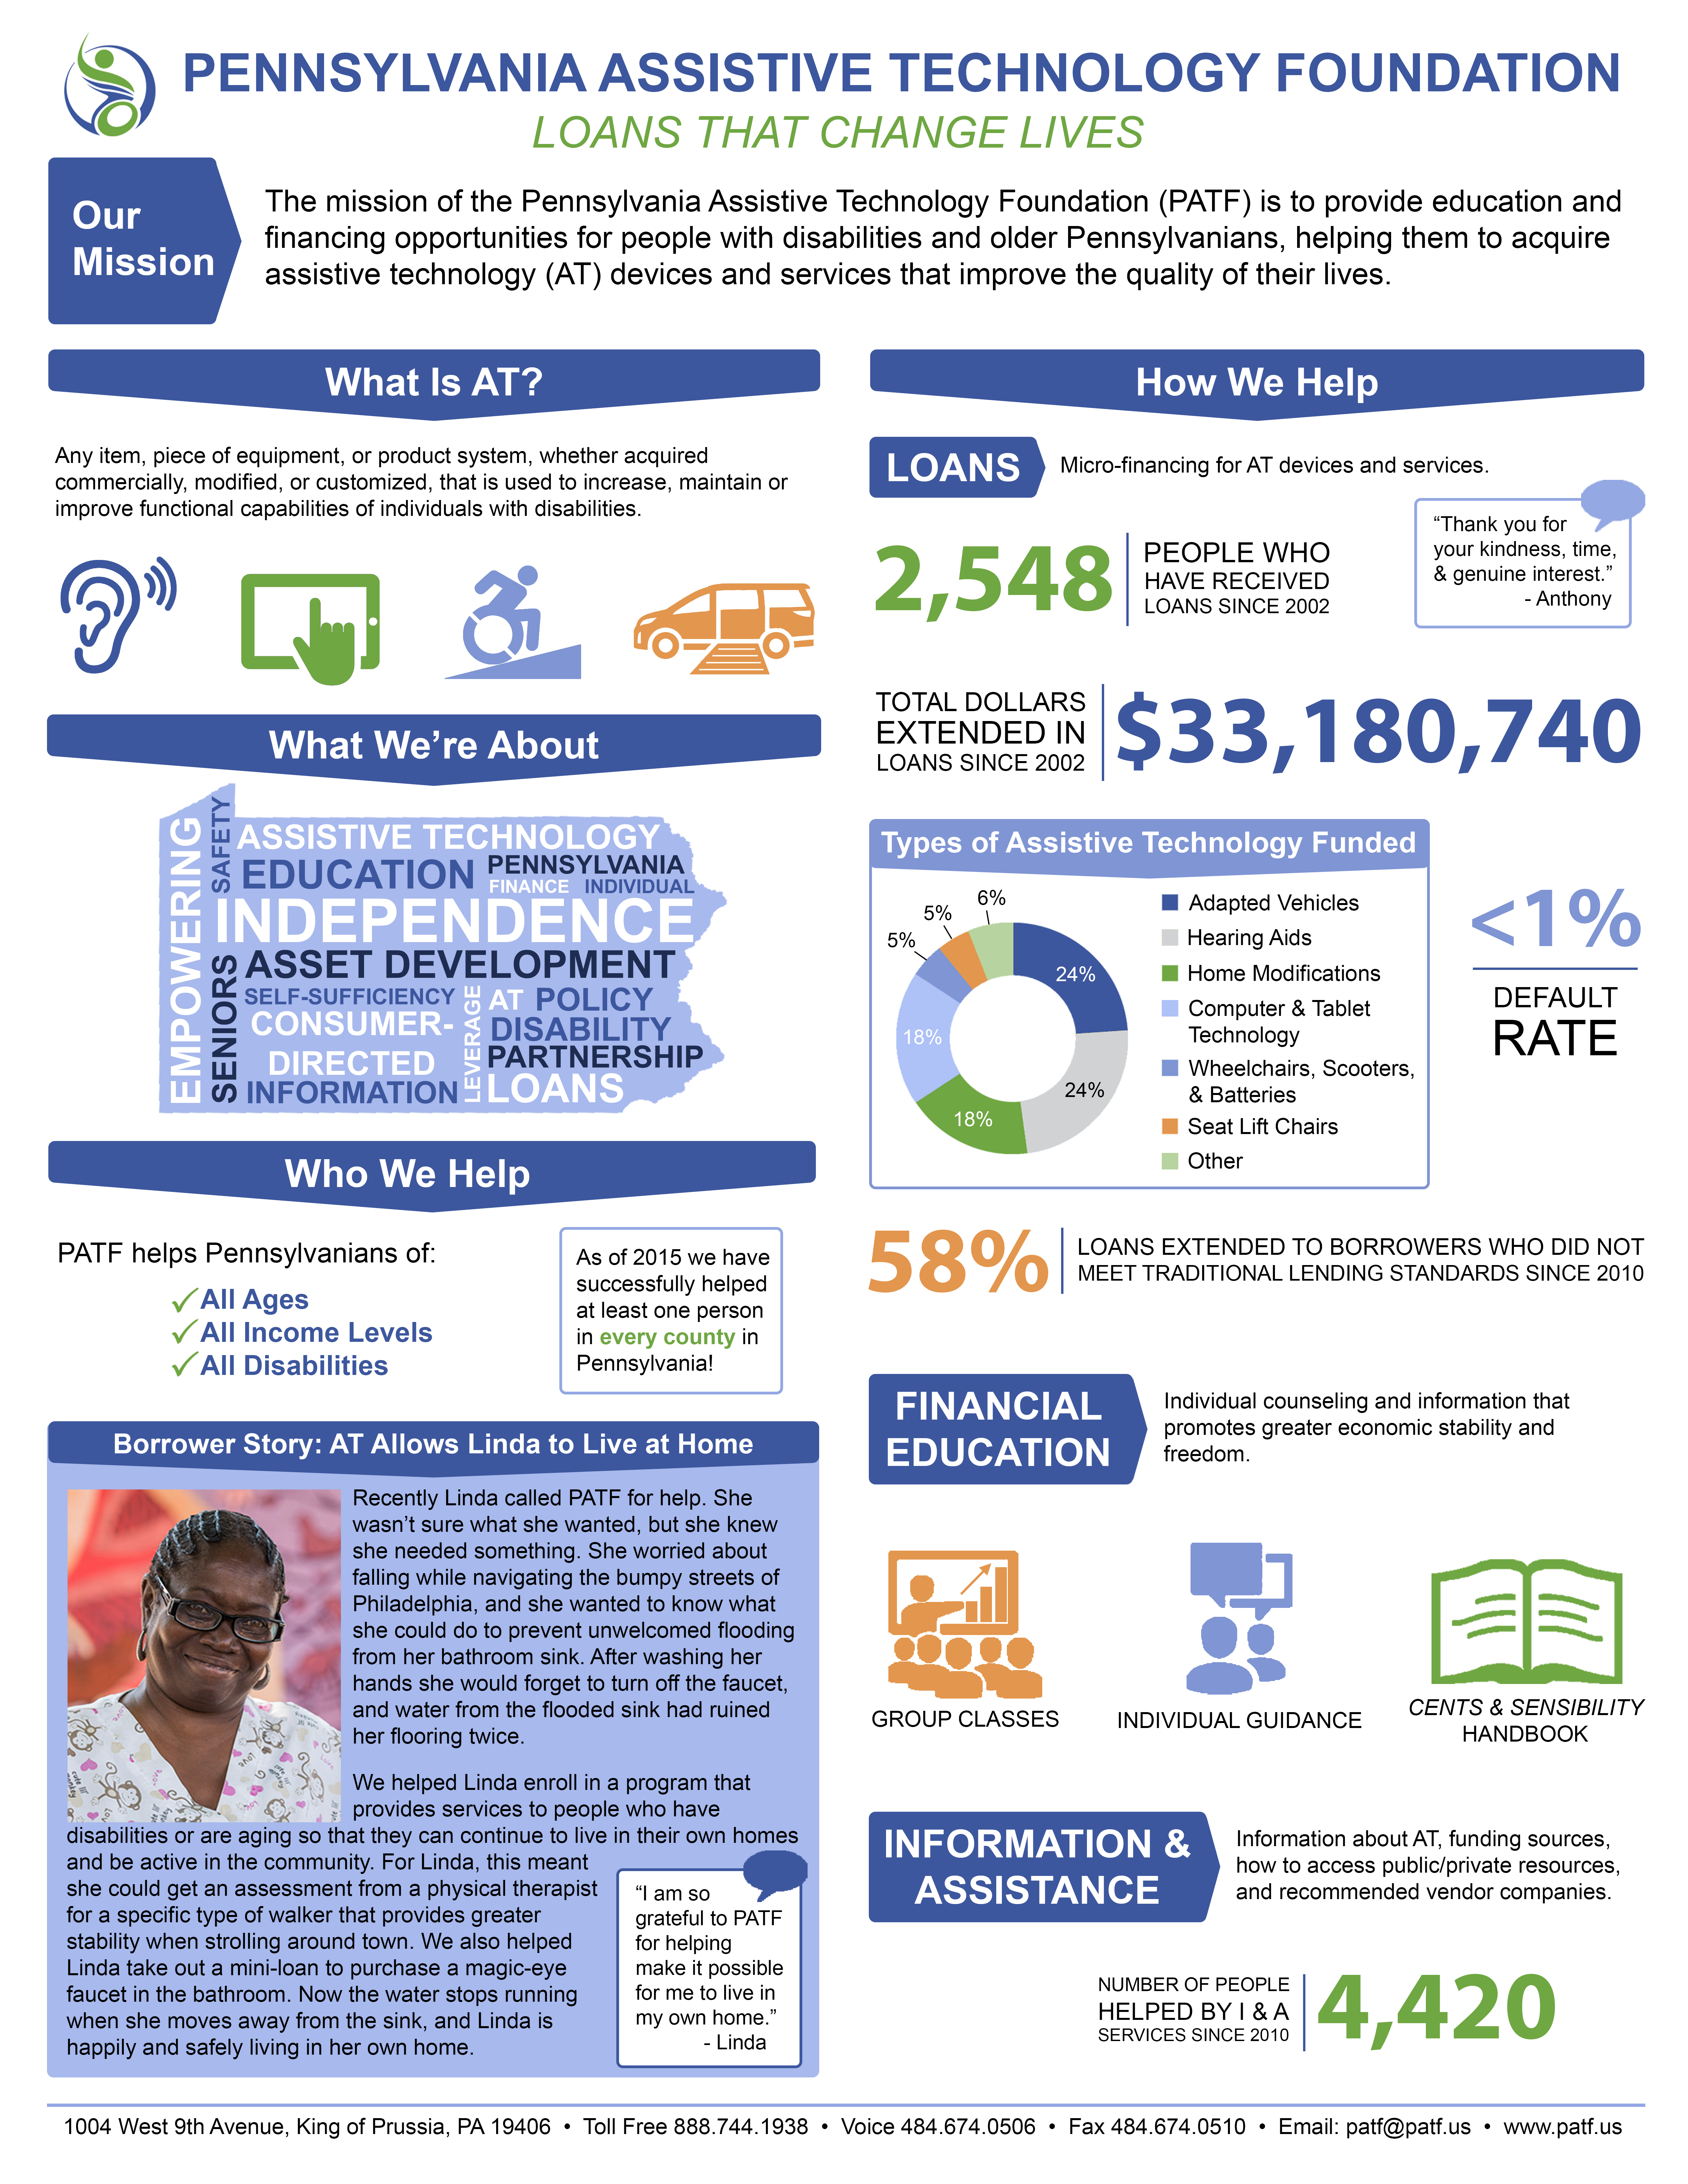 PATF Infographic: Pennsylvania Assistive Technology Foundation: Loans That Change Lives. Text alternative for web accessibility provided below infographic.